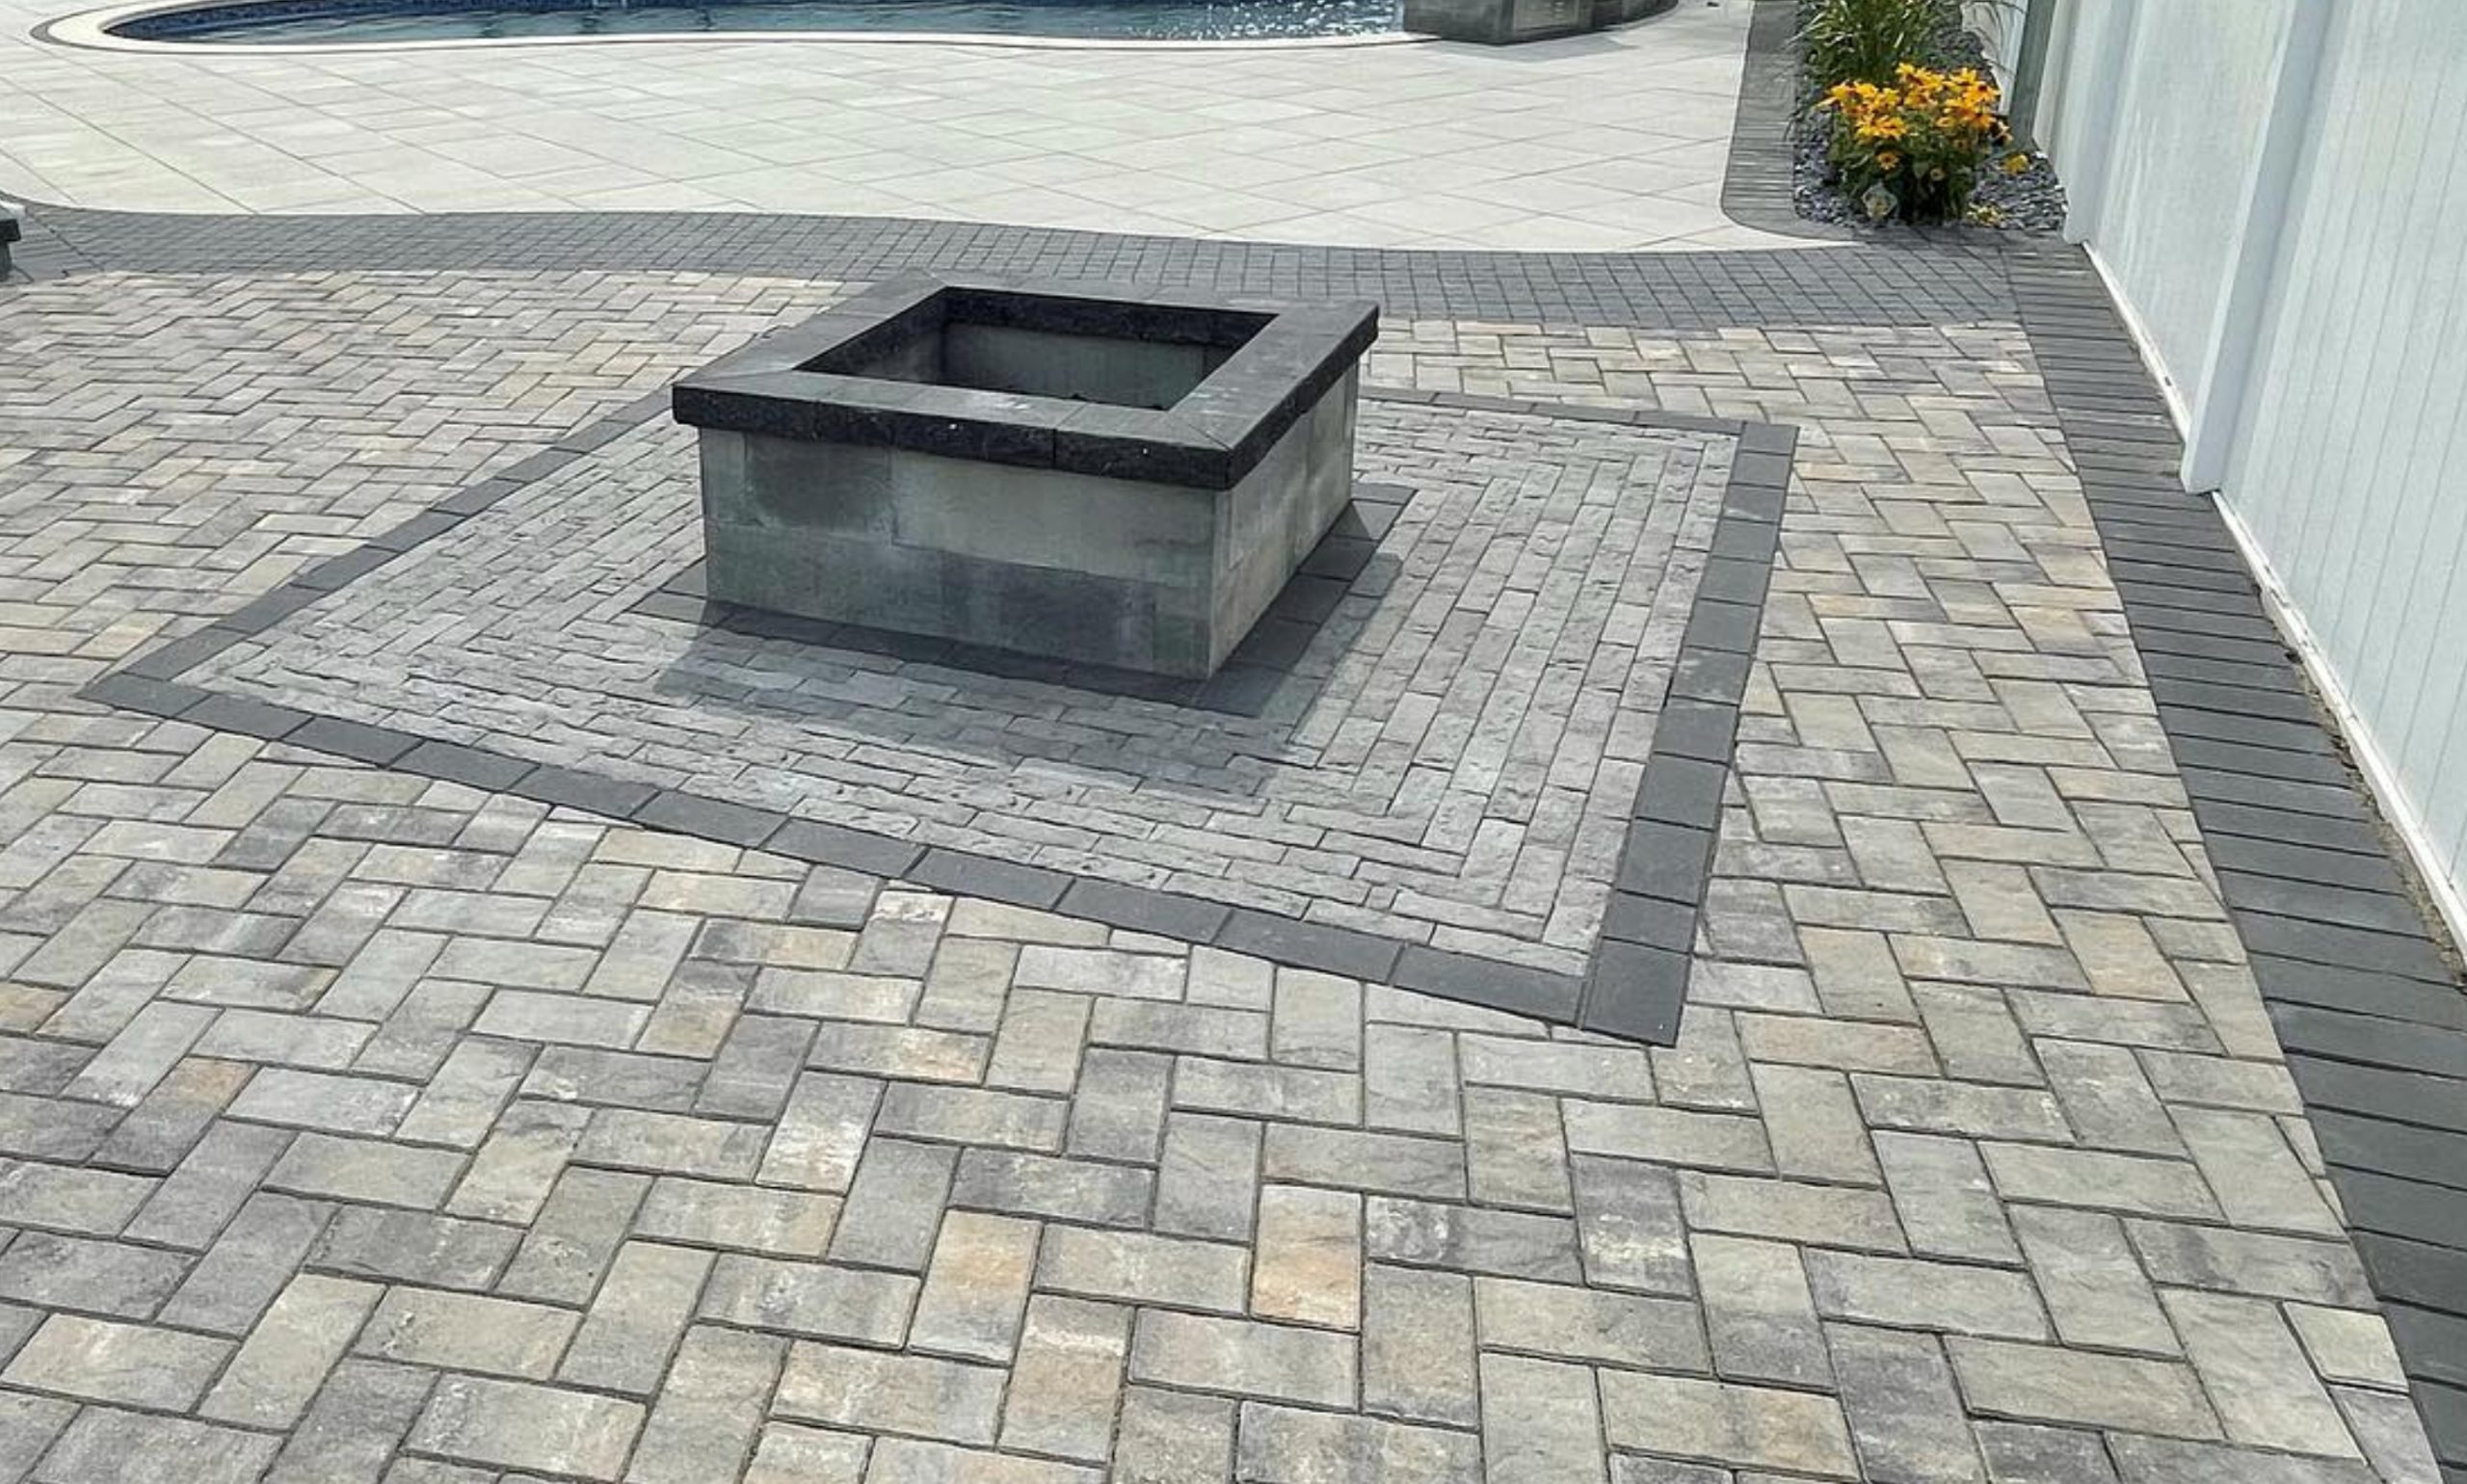 this image shows fire pits in Rancho Cucamonga, California